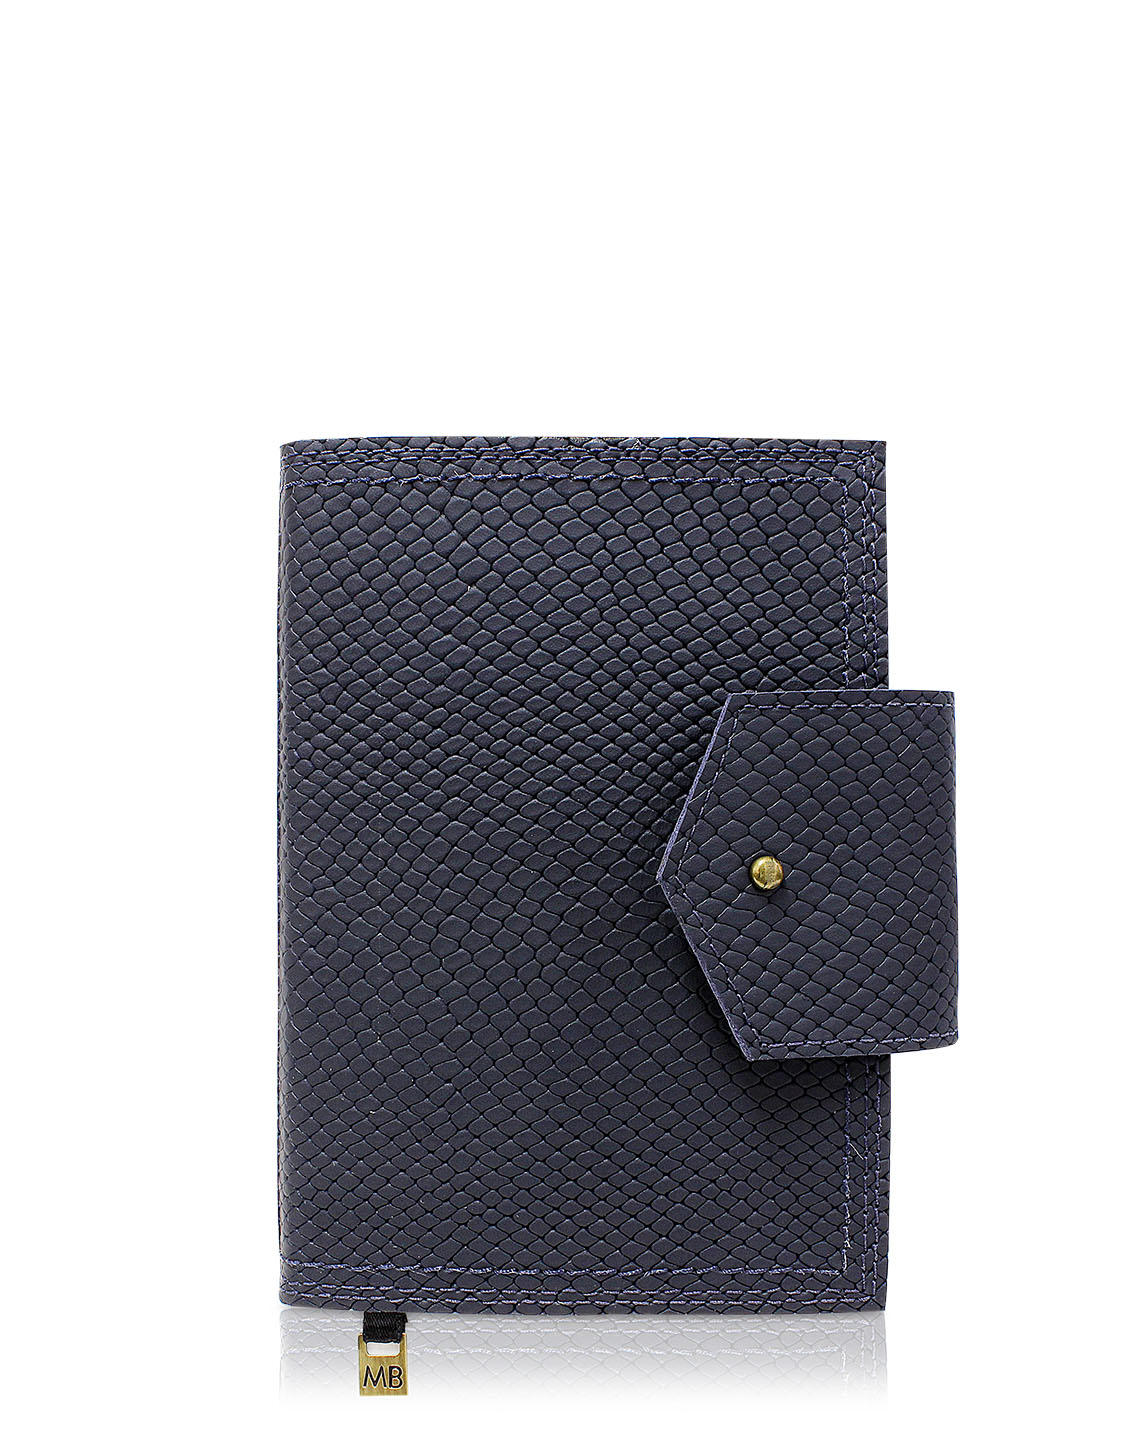 Agenda AG-129 Color Azul